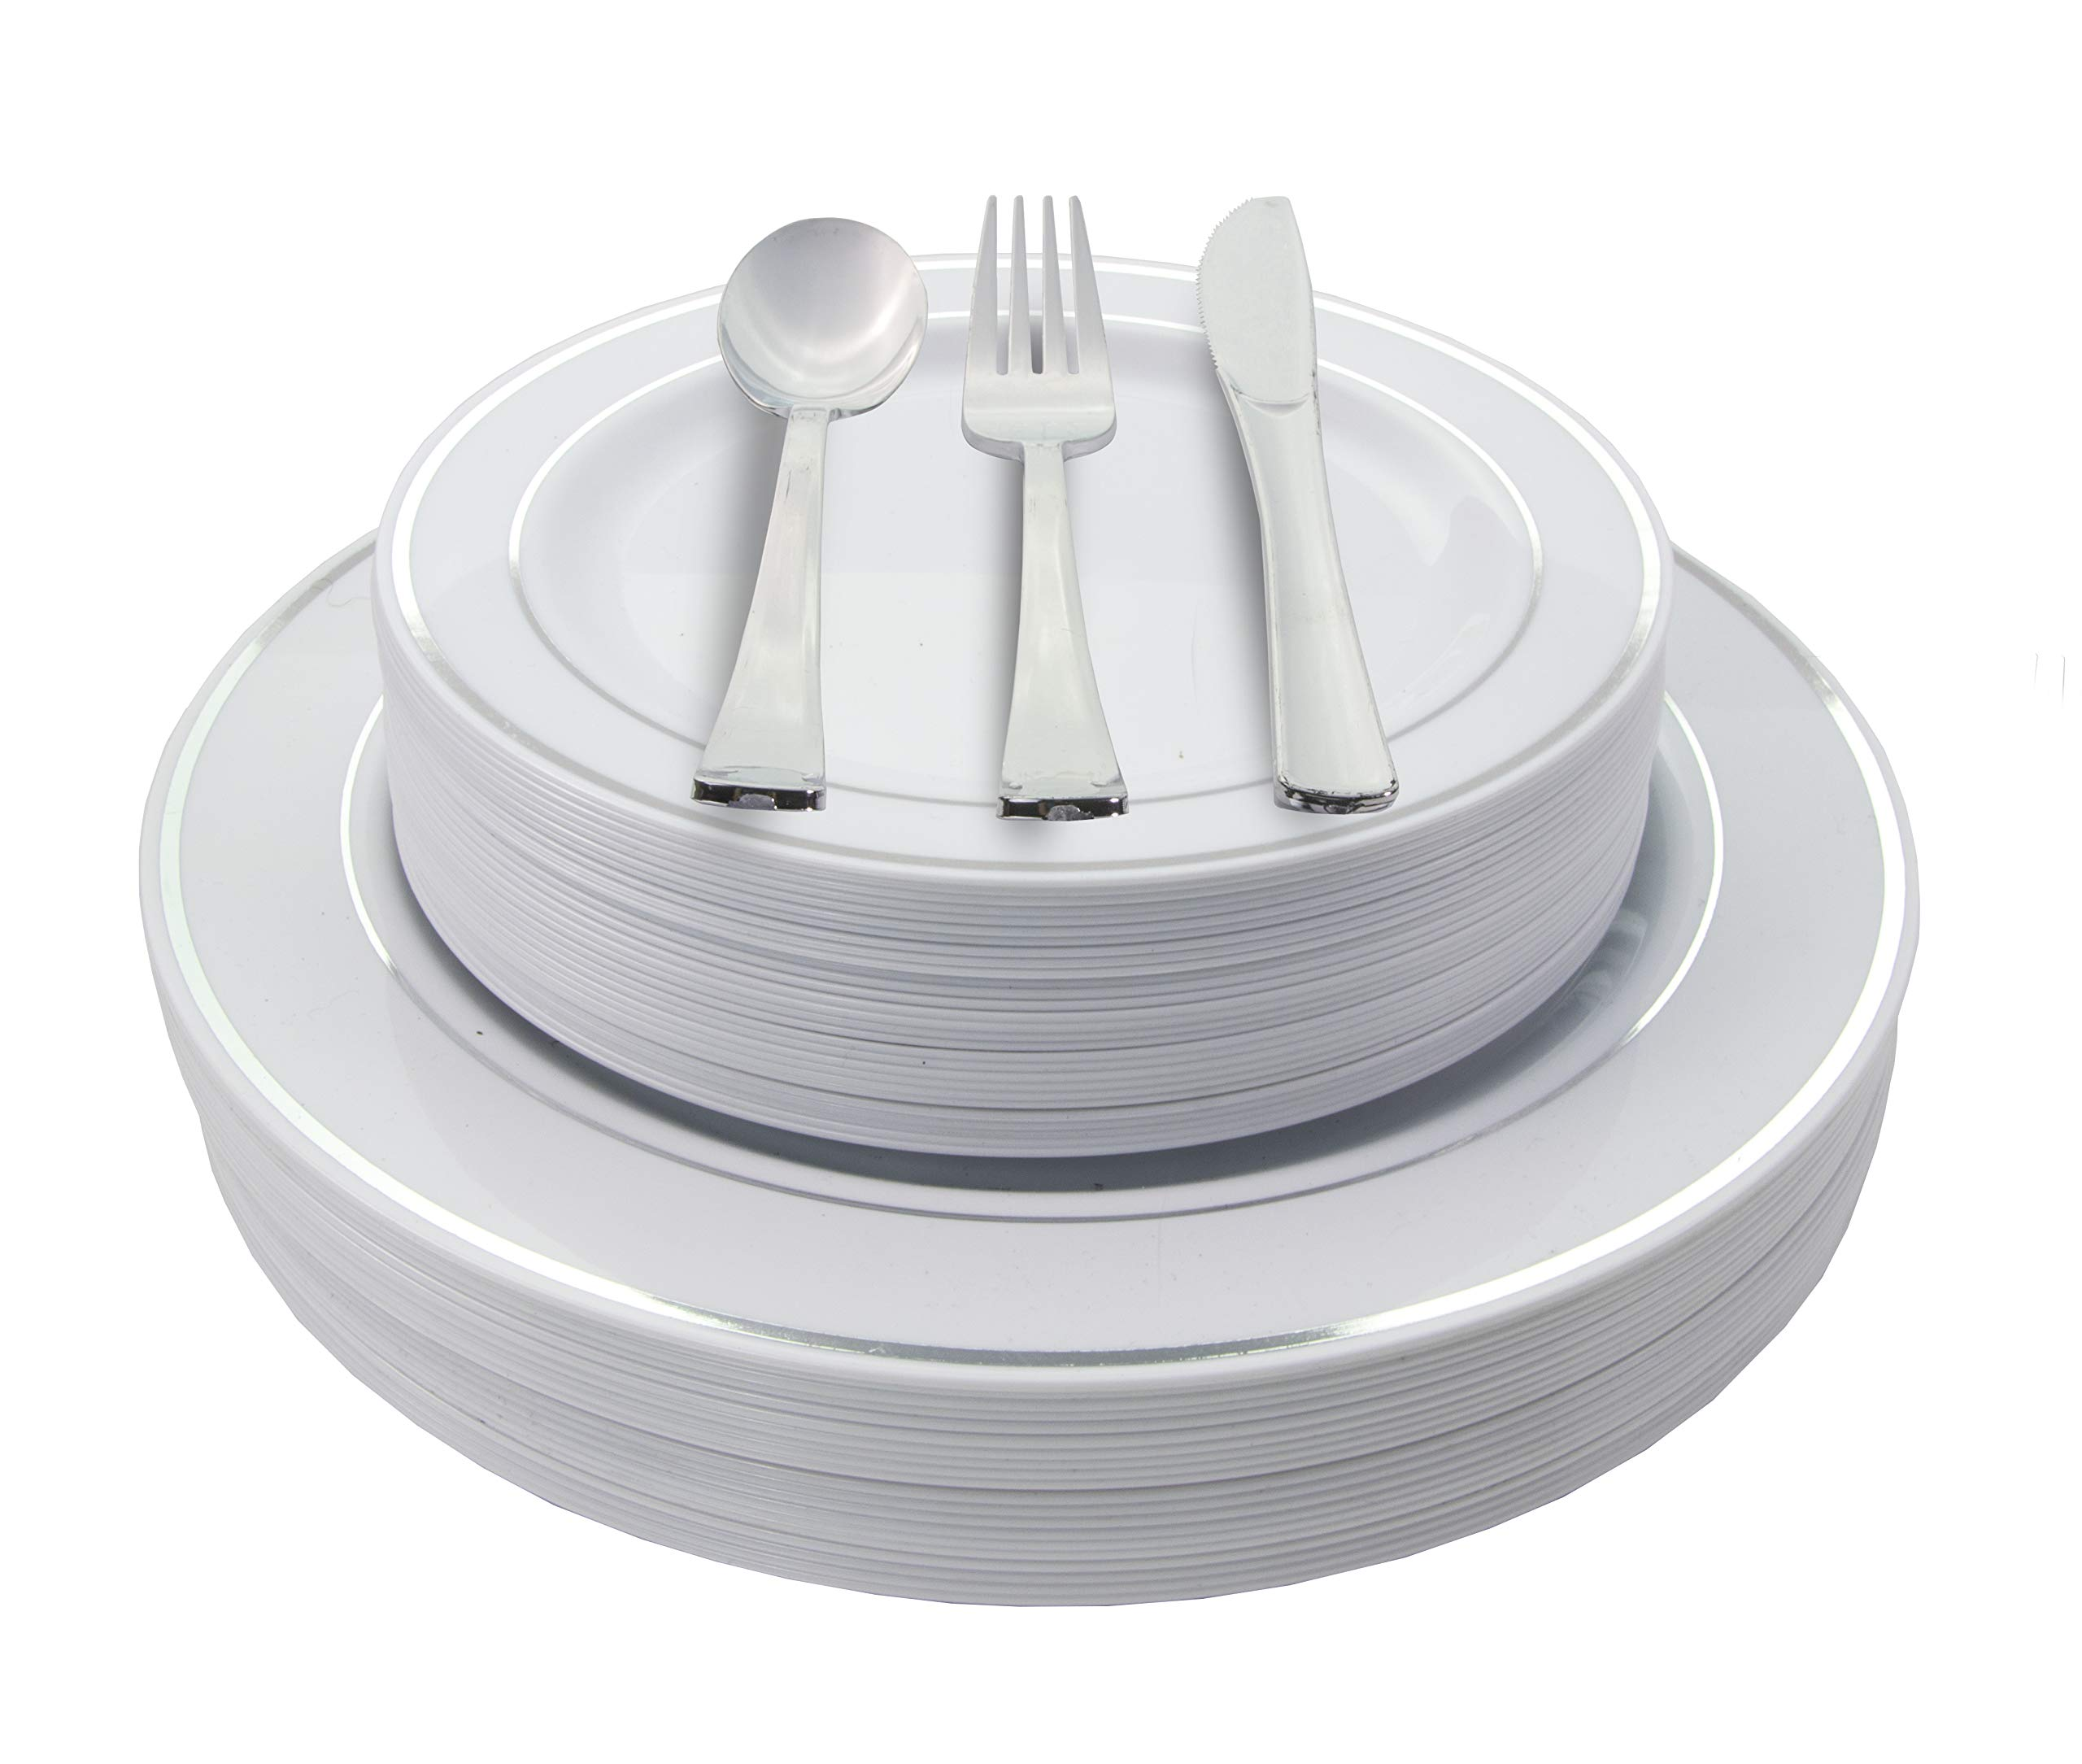 200 Piece Heavyweight Party Disposable Plastic Plates and Cutlery Set Includes 40 Dinner Plates 40 Dessert Plates and 40 Pieces of Glossy Silver Plastic Forks Knives and Spoons (Silver)